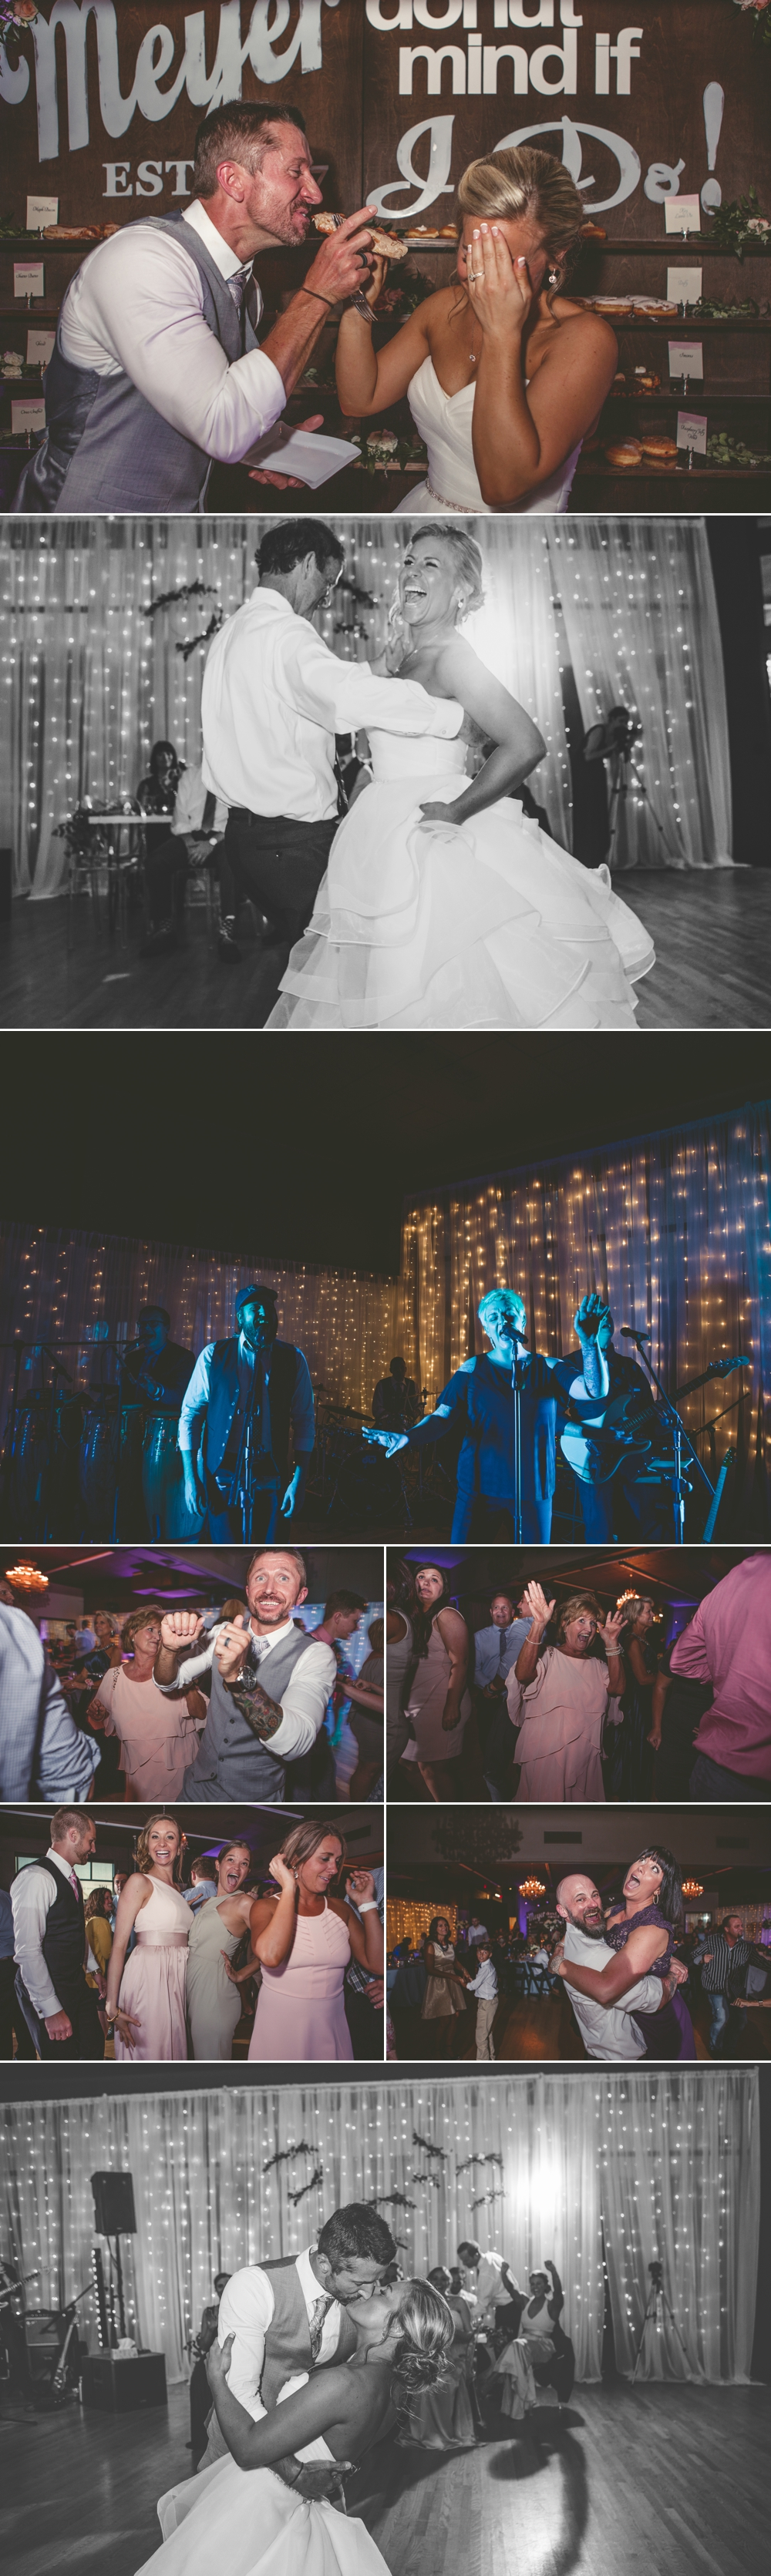 jason_domingues_photography_best_kansas_city_photographer_kc_weddings_melange_dance_mission_ks0004.jpg